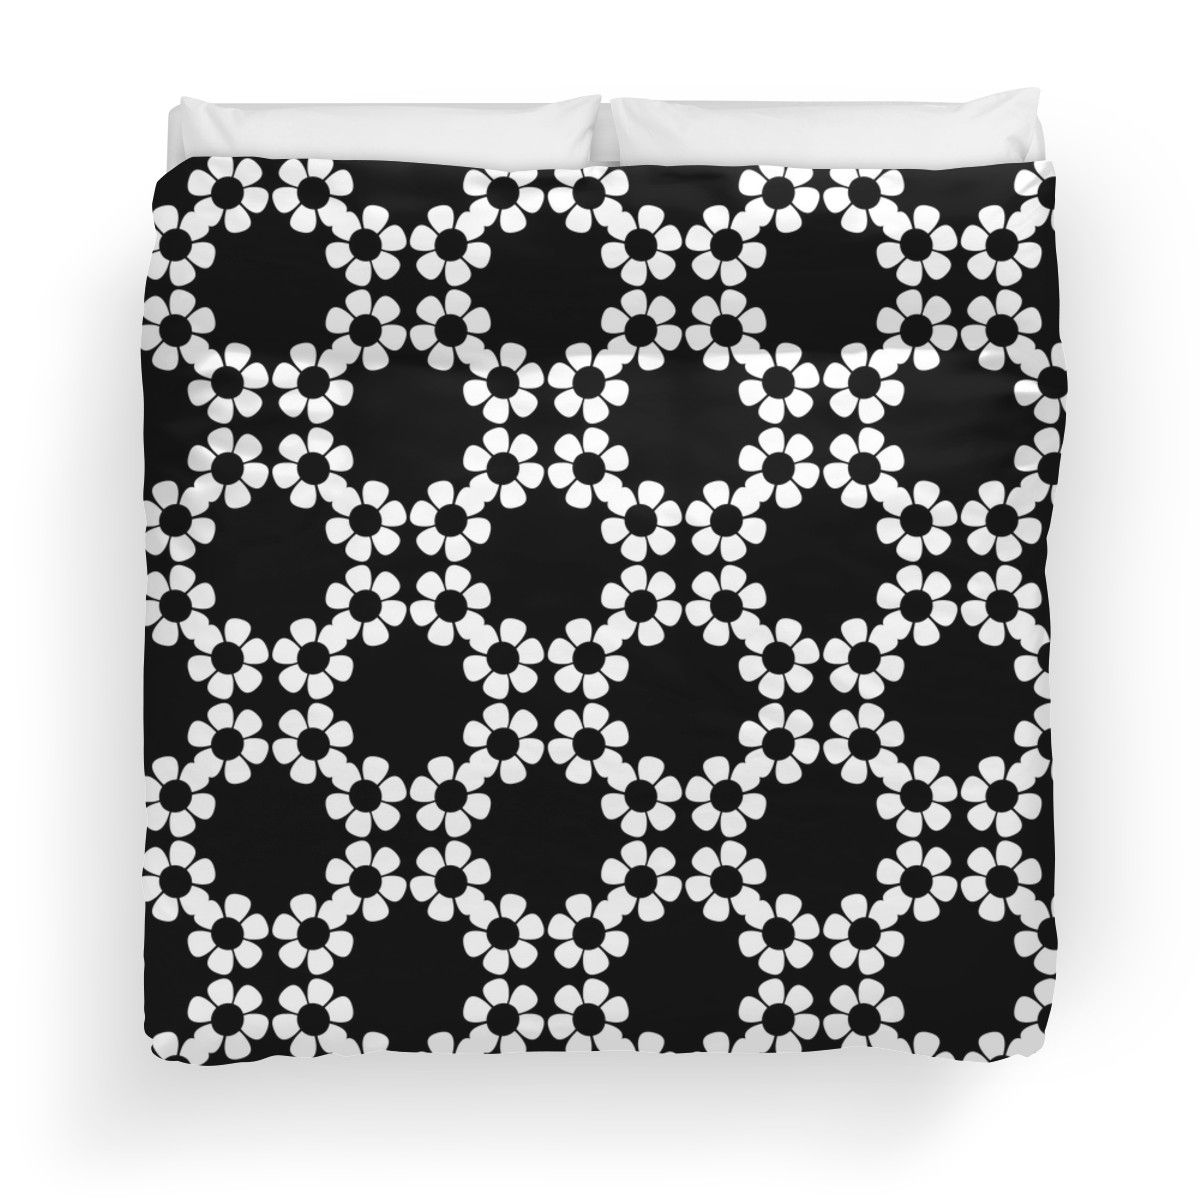 'Black and White Floral Design' Duvet Cover by